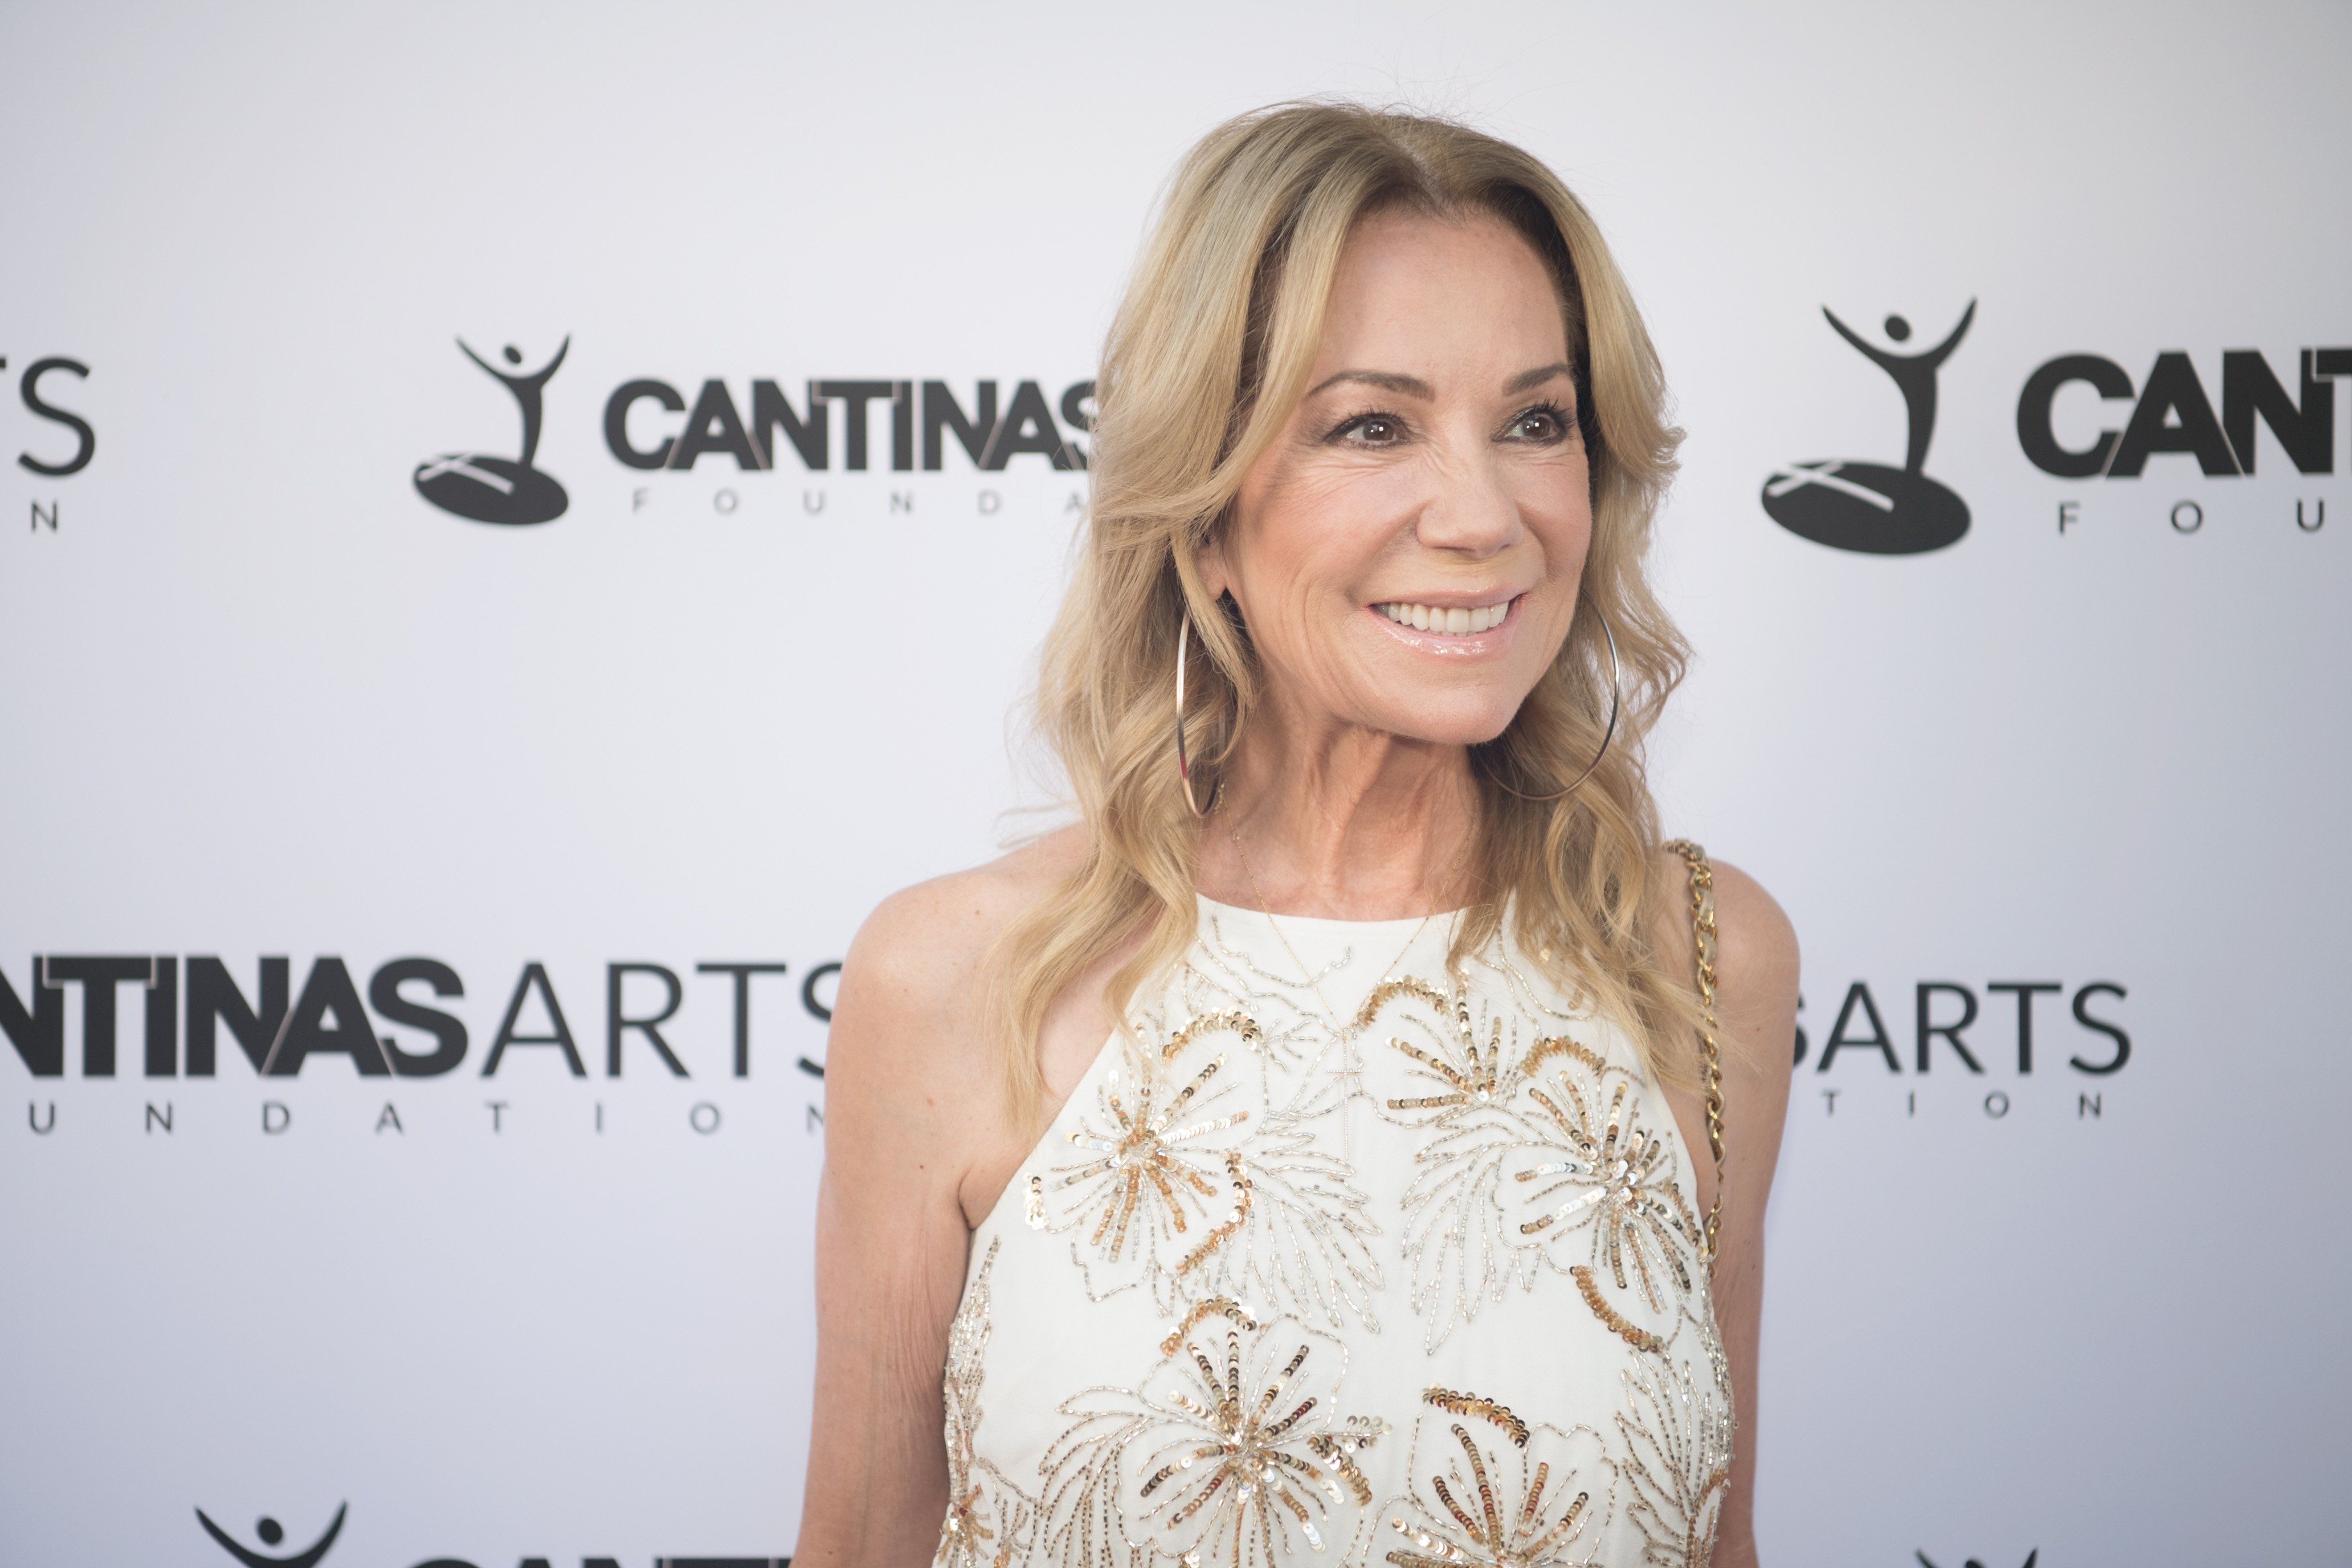 Kathie Lee Gifford arrives at The Cantinas Arts Foundation COTA Celebration of the Arts on September 15, 2018. | Photo: Getty Images